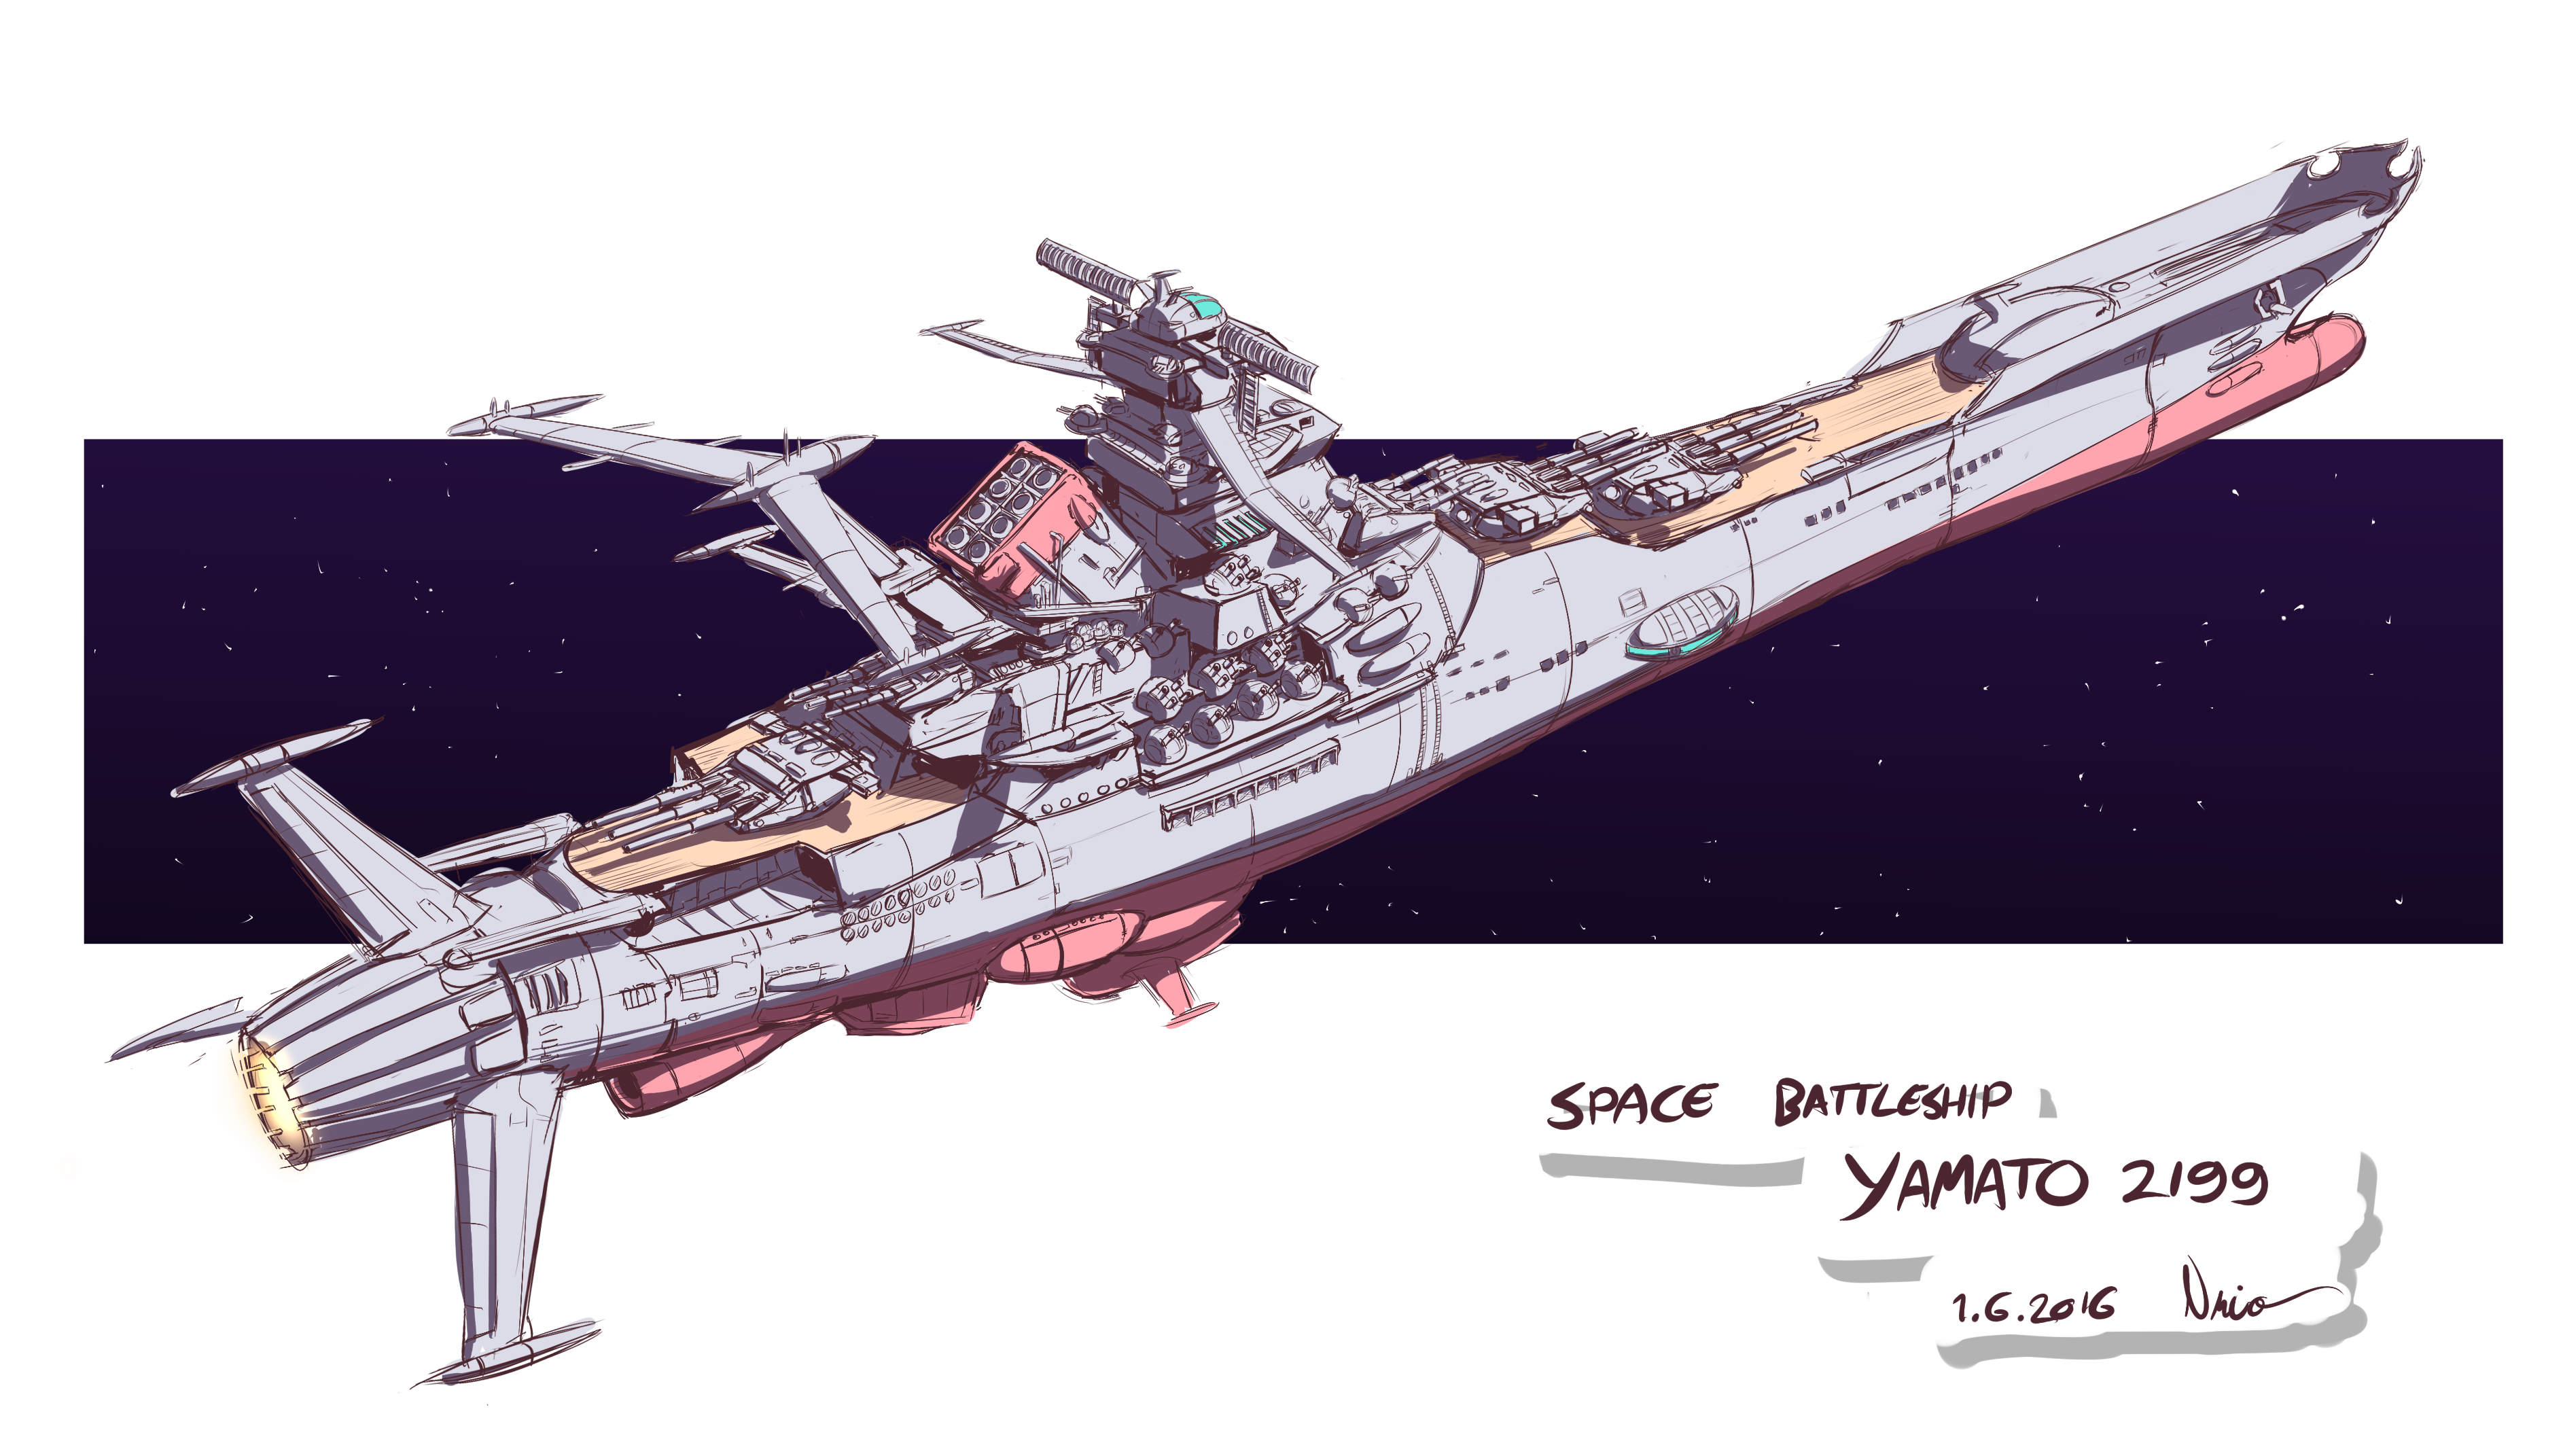 Space Battleship YAMATO 2199 rough sketch by Nsio on ...